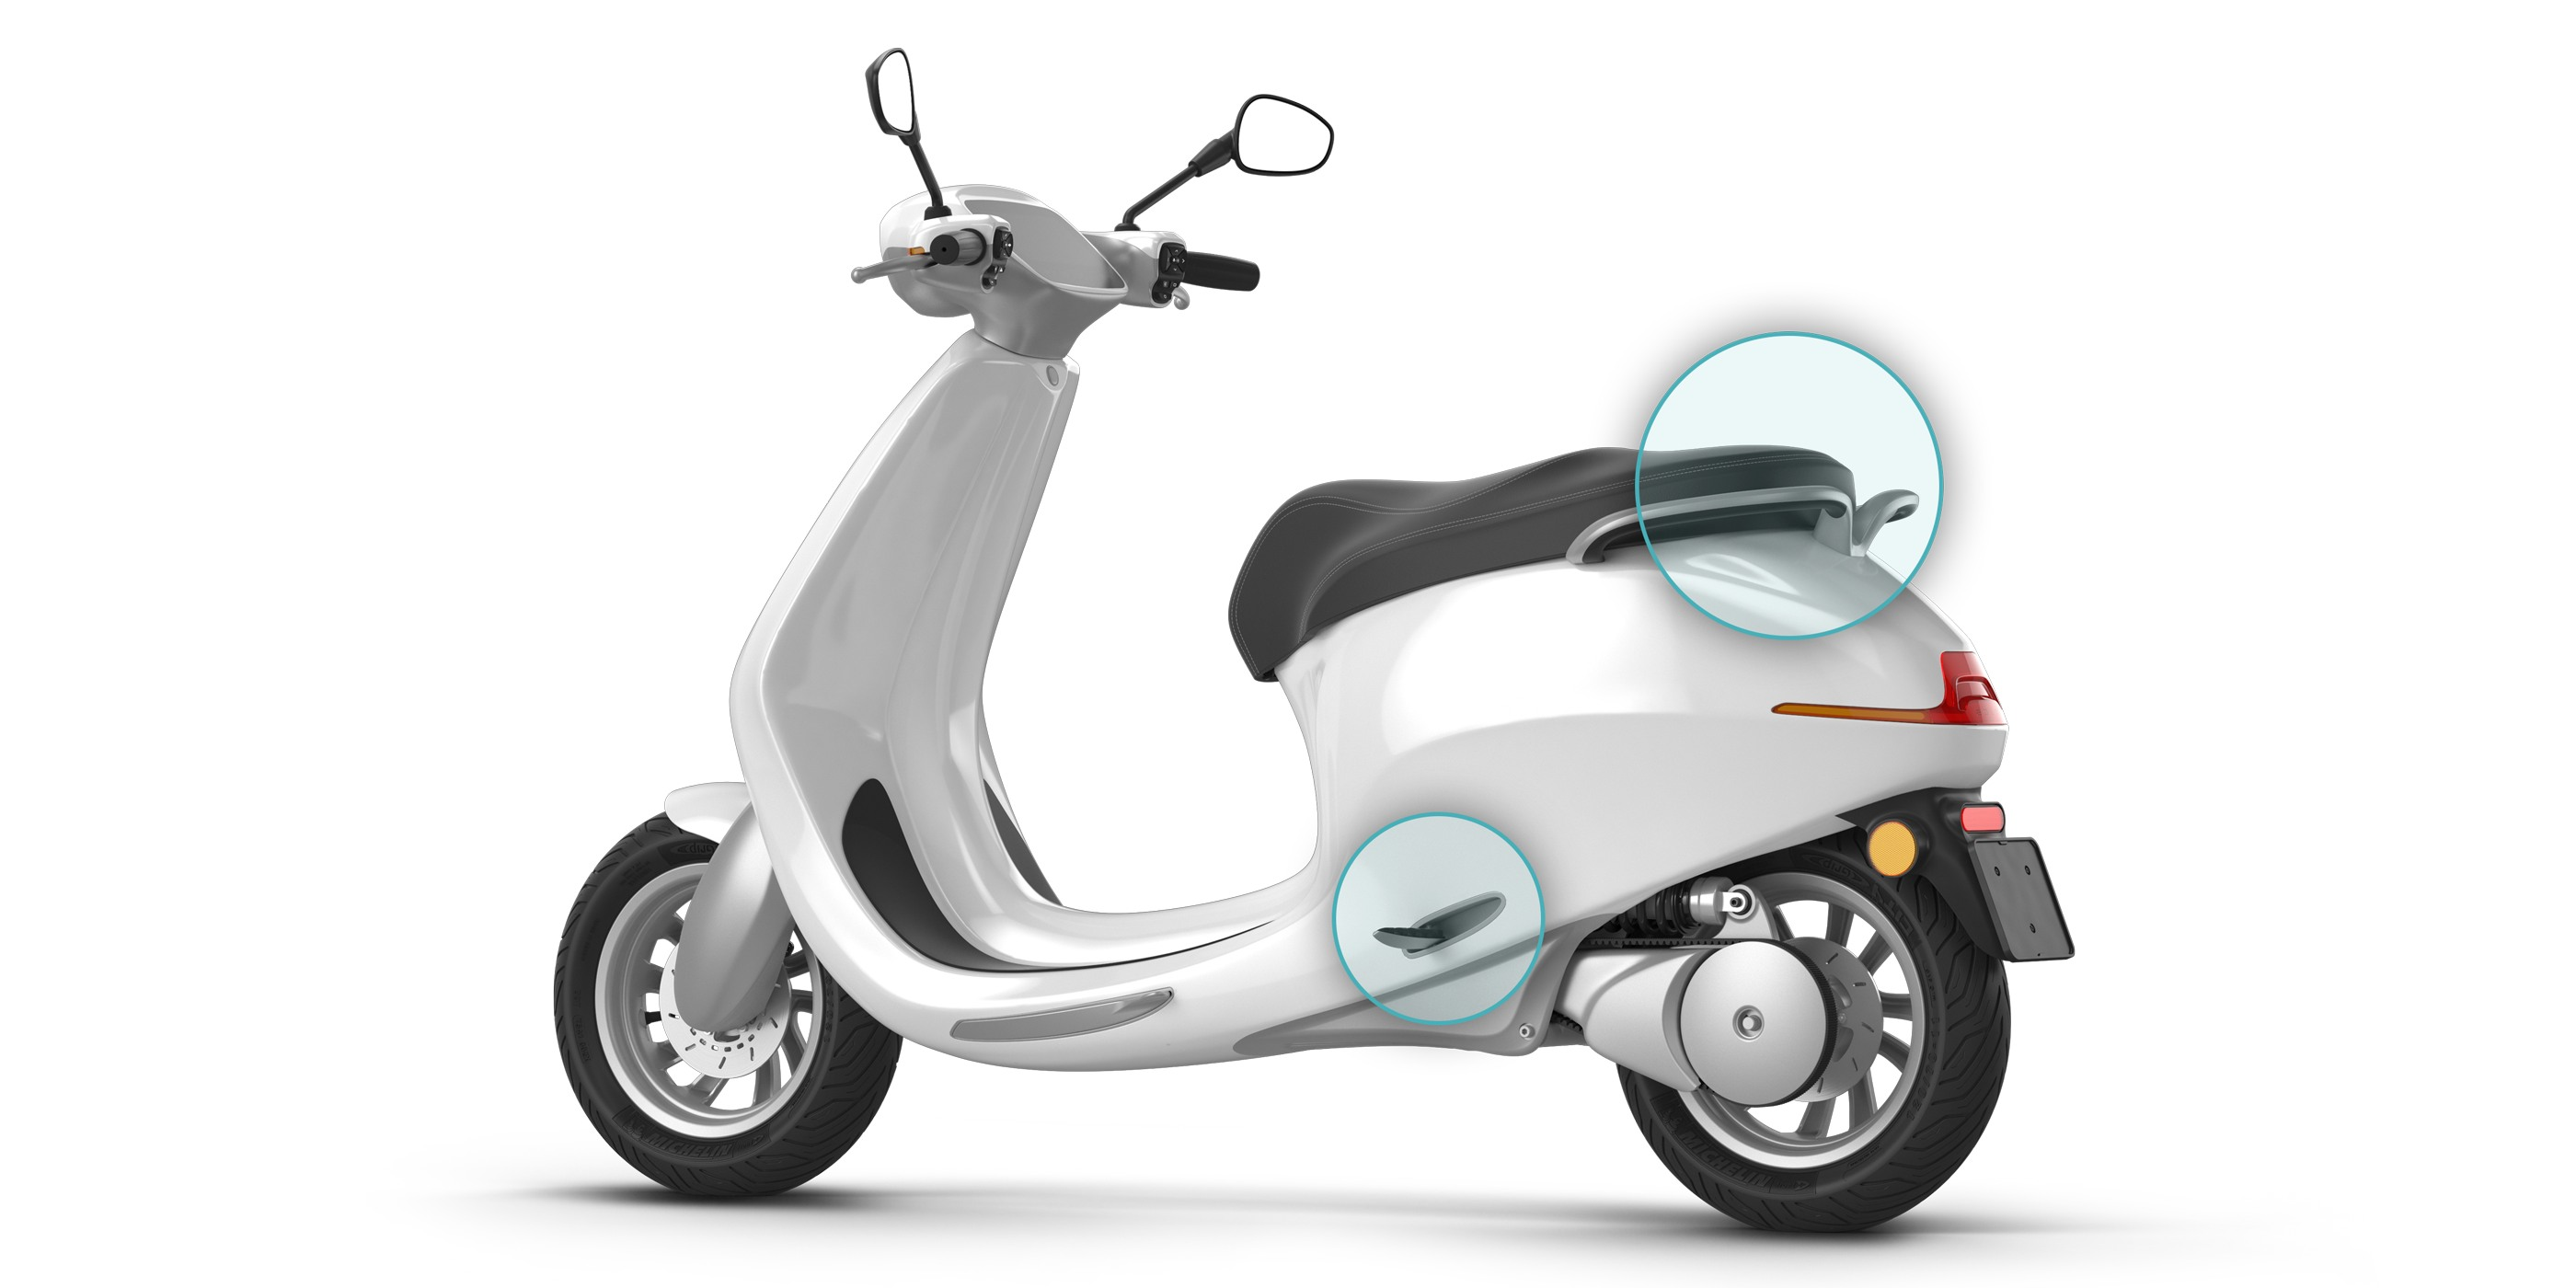 Electric Motor Scooter >> New Dutch Built Electric Scooter Claims 400 Km Range With Modular